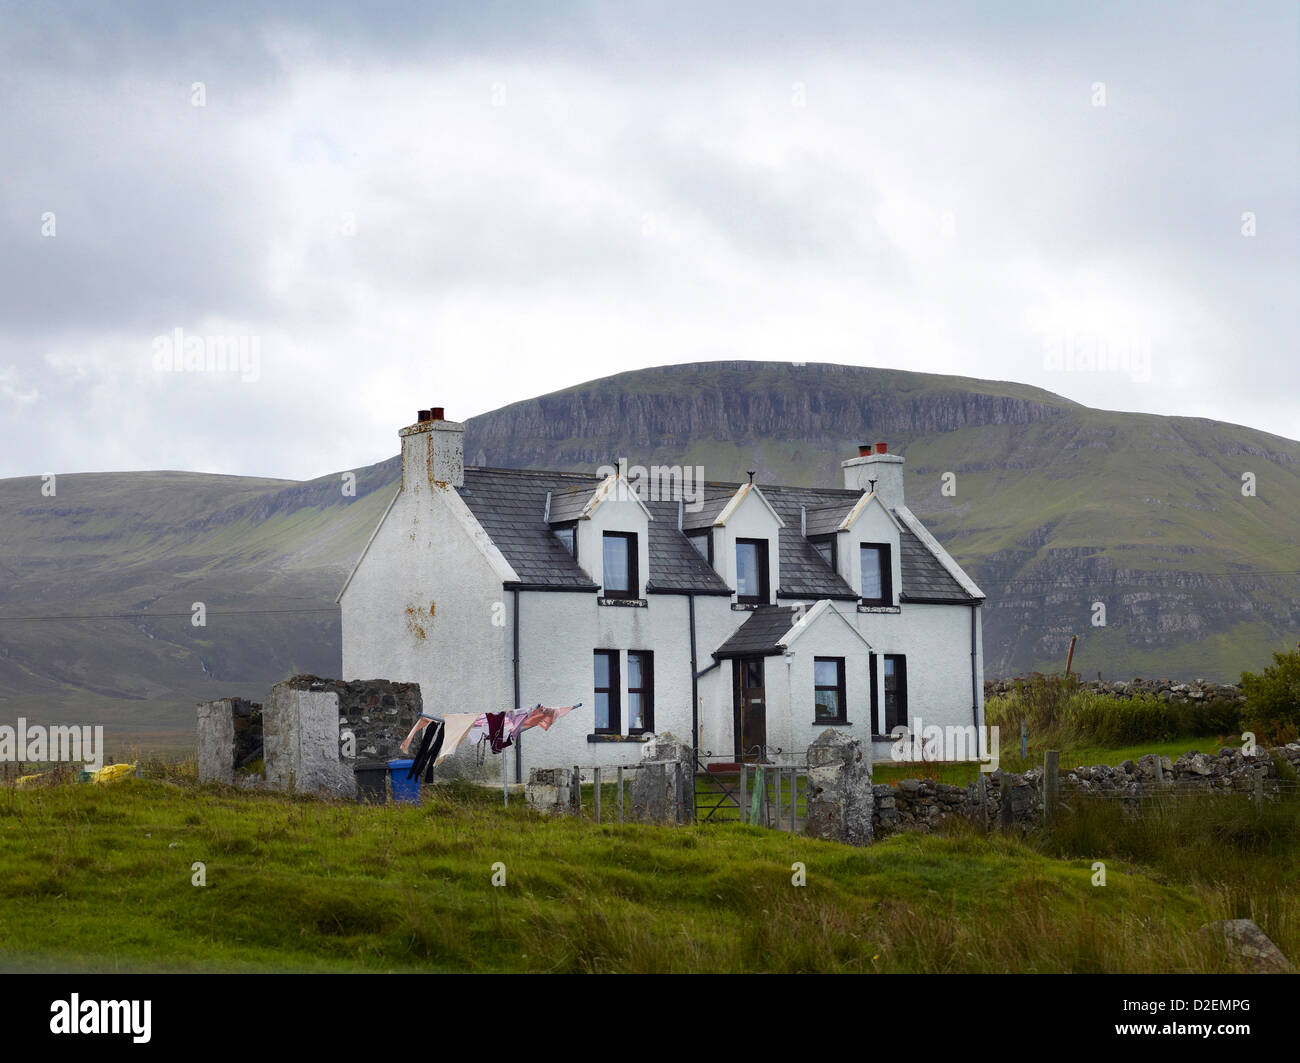 Traditional Croft House at Killmaluig on the northern tip of the Isle of Skye, North West Highland Scotland - Stock Image